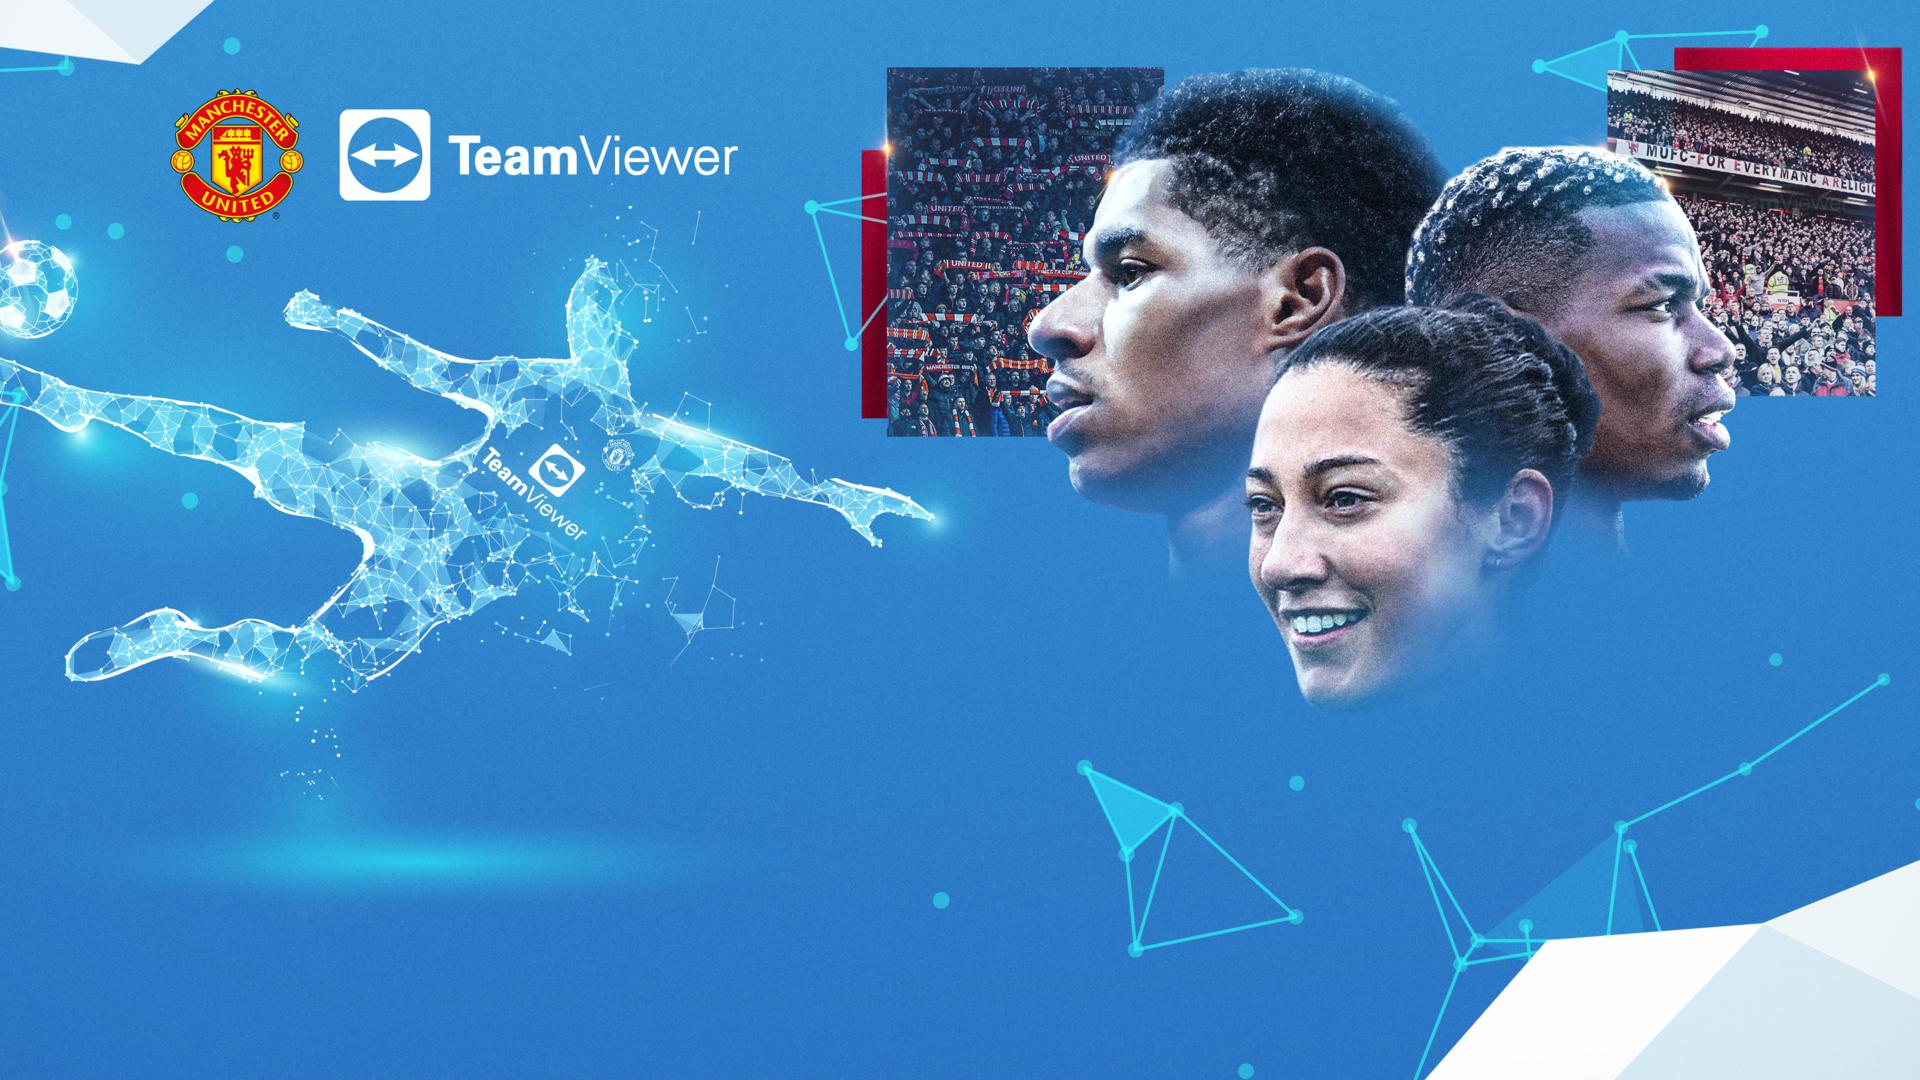 Manchester United sign a £235m shirt sponsorship Deal with TeamViewer